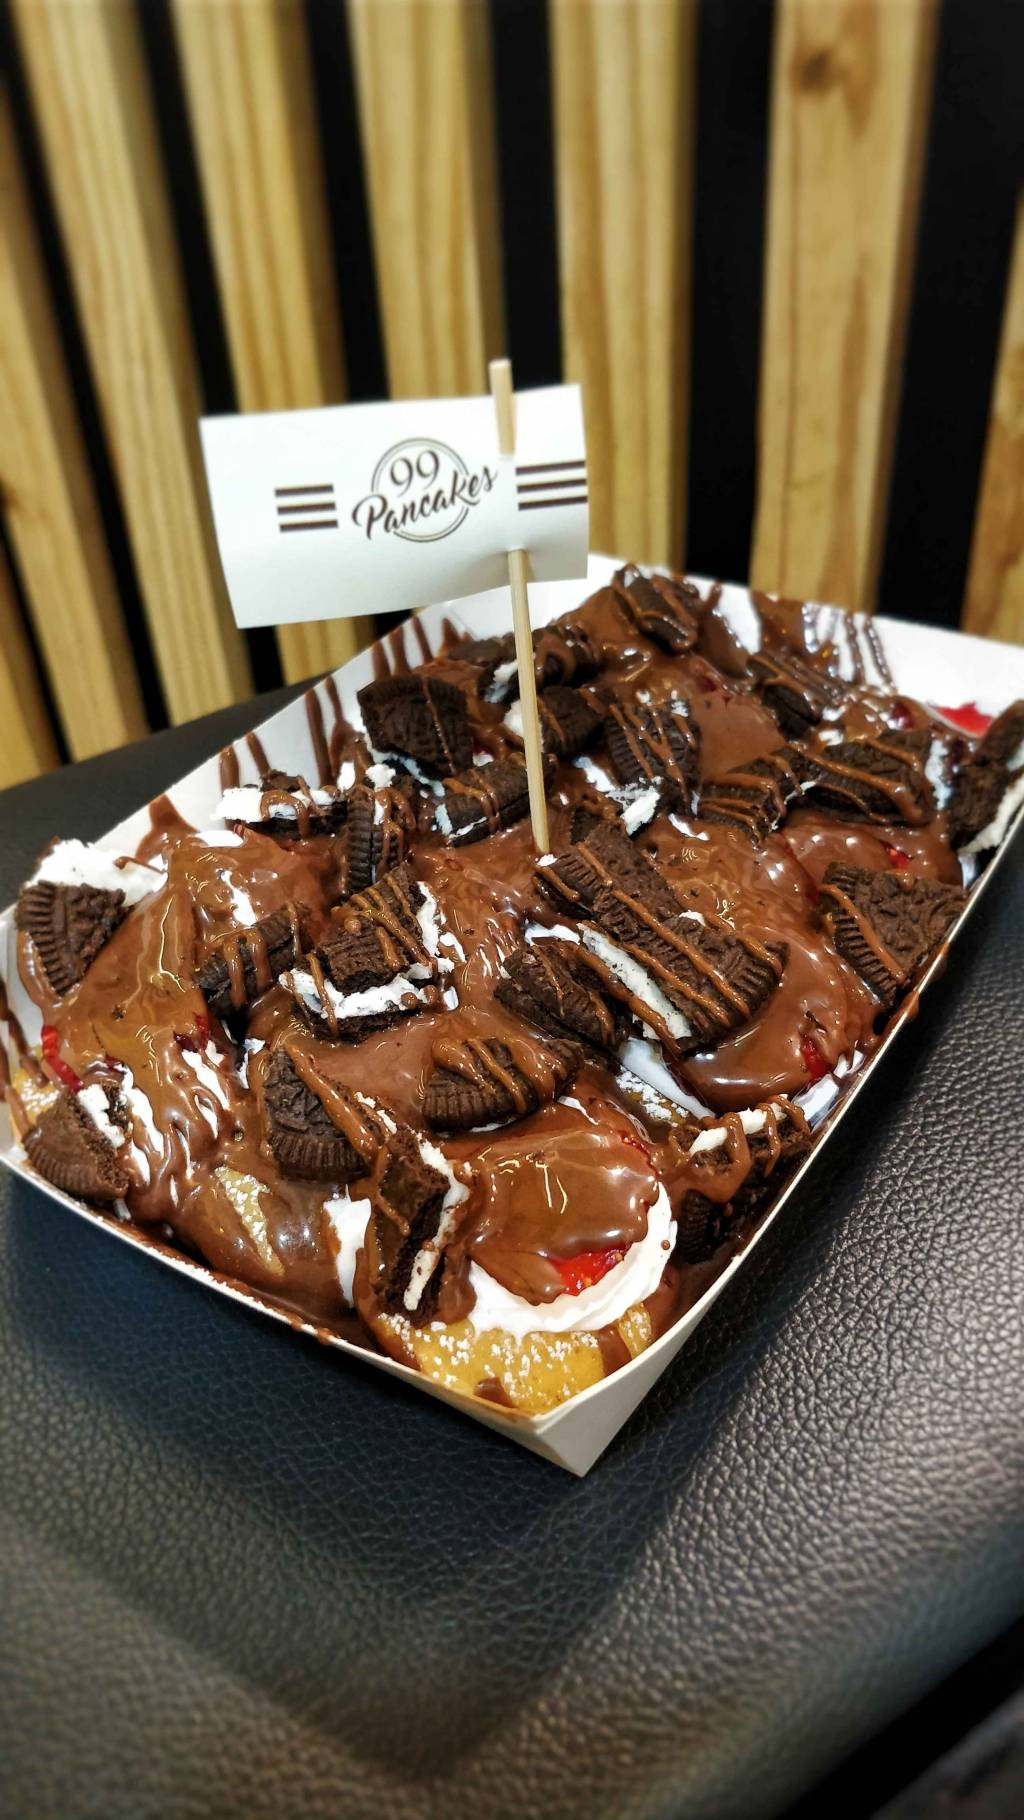 Feast on mini pancakes shakes at this awesome pancake parlour in this we added oreo as our extra toppings the pancakes are sugar coated and topped with all the chocolate sauces strawberry and oreo ccuart Gallery